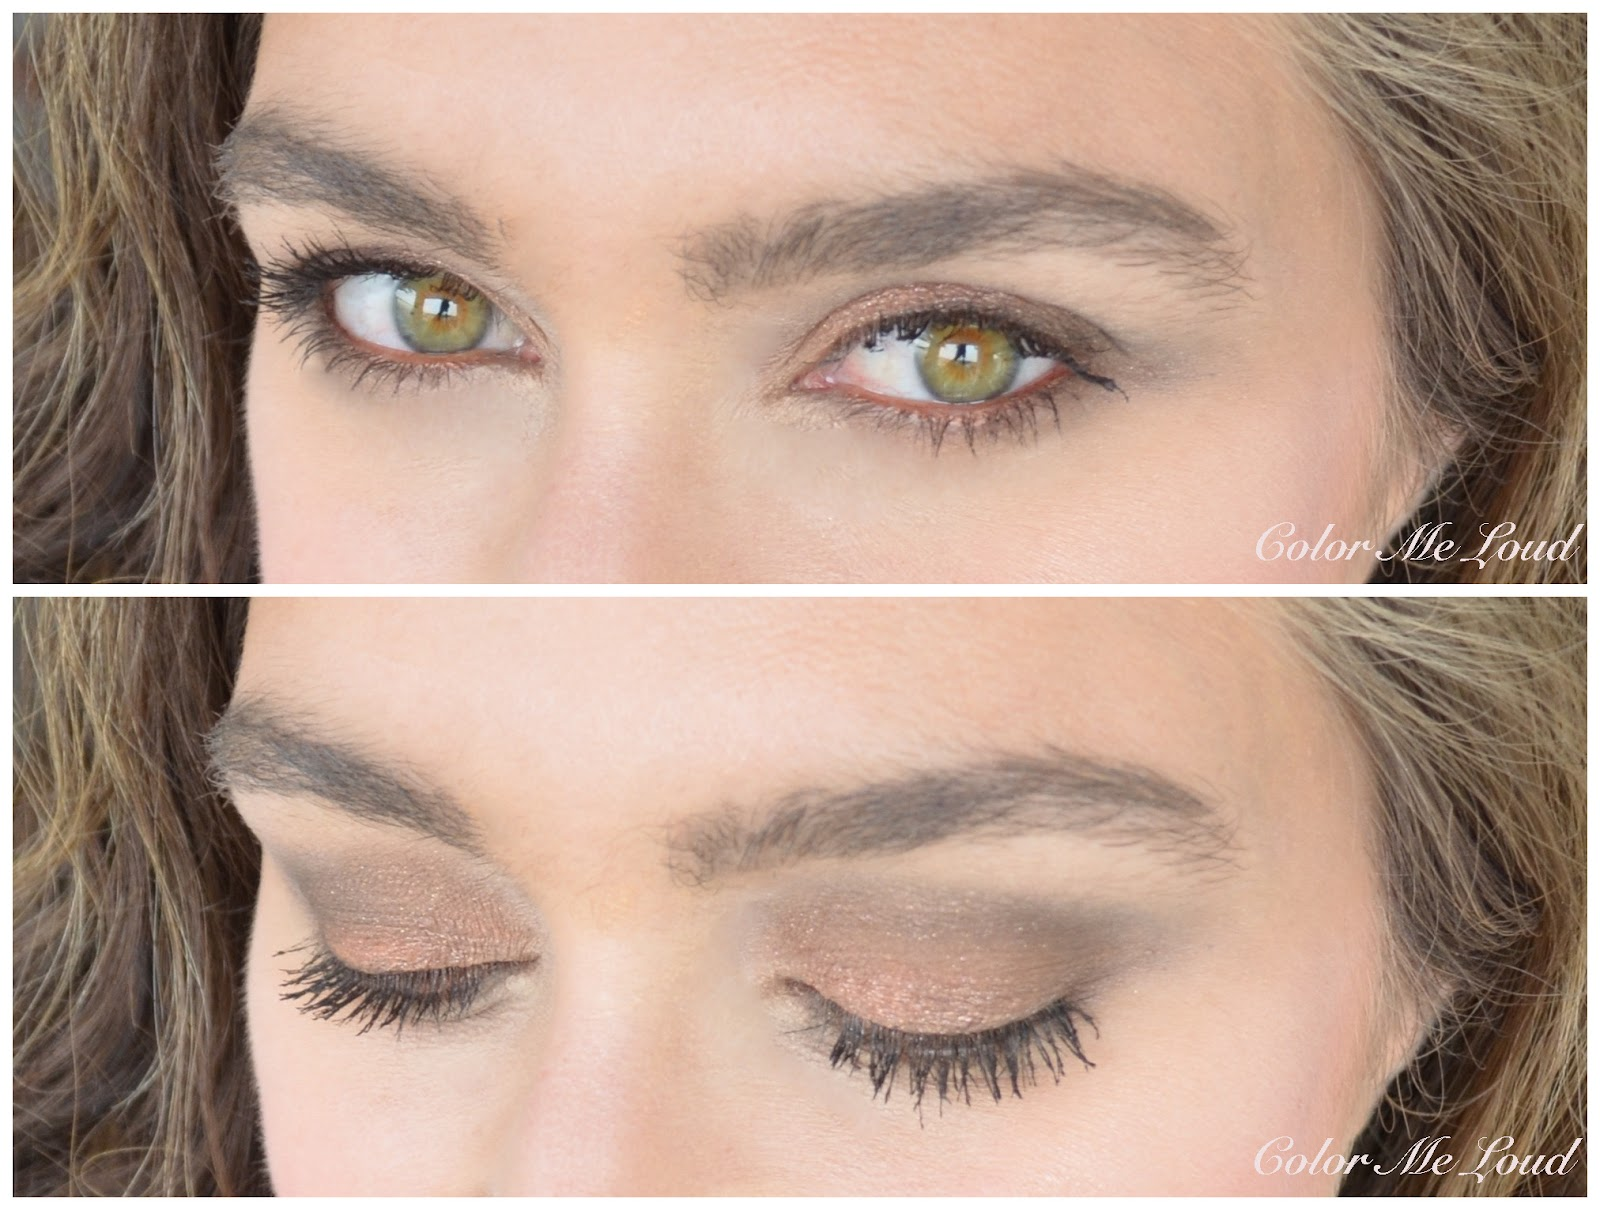 Inaction: Chanel Eyeshadow Palette In Entrelacs Over Illusion D'ombre  Rougegorge